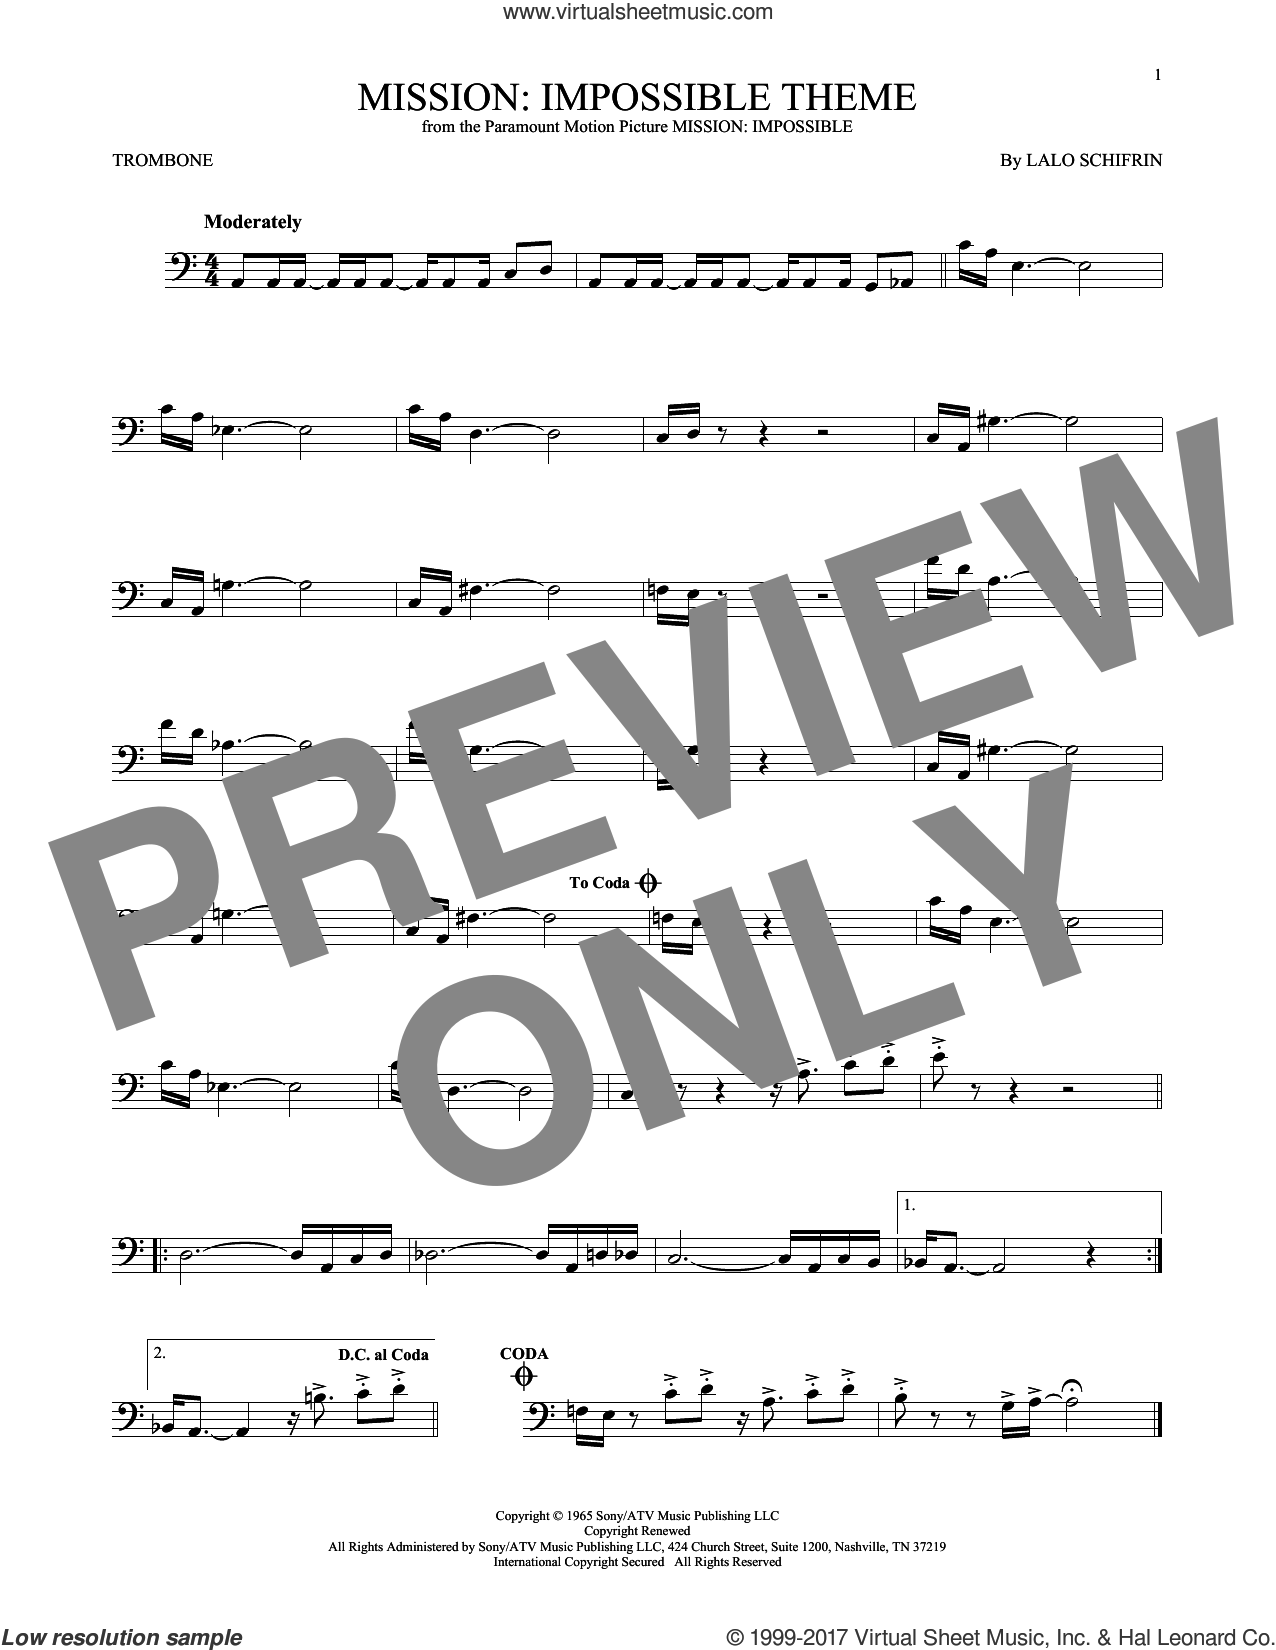 Mission: Impossible Theme sheet music for trombone solo by Lalo Schifrin, intermediate skill level